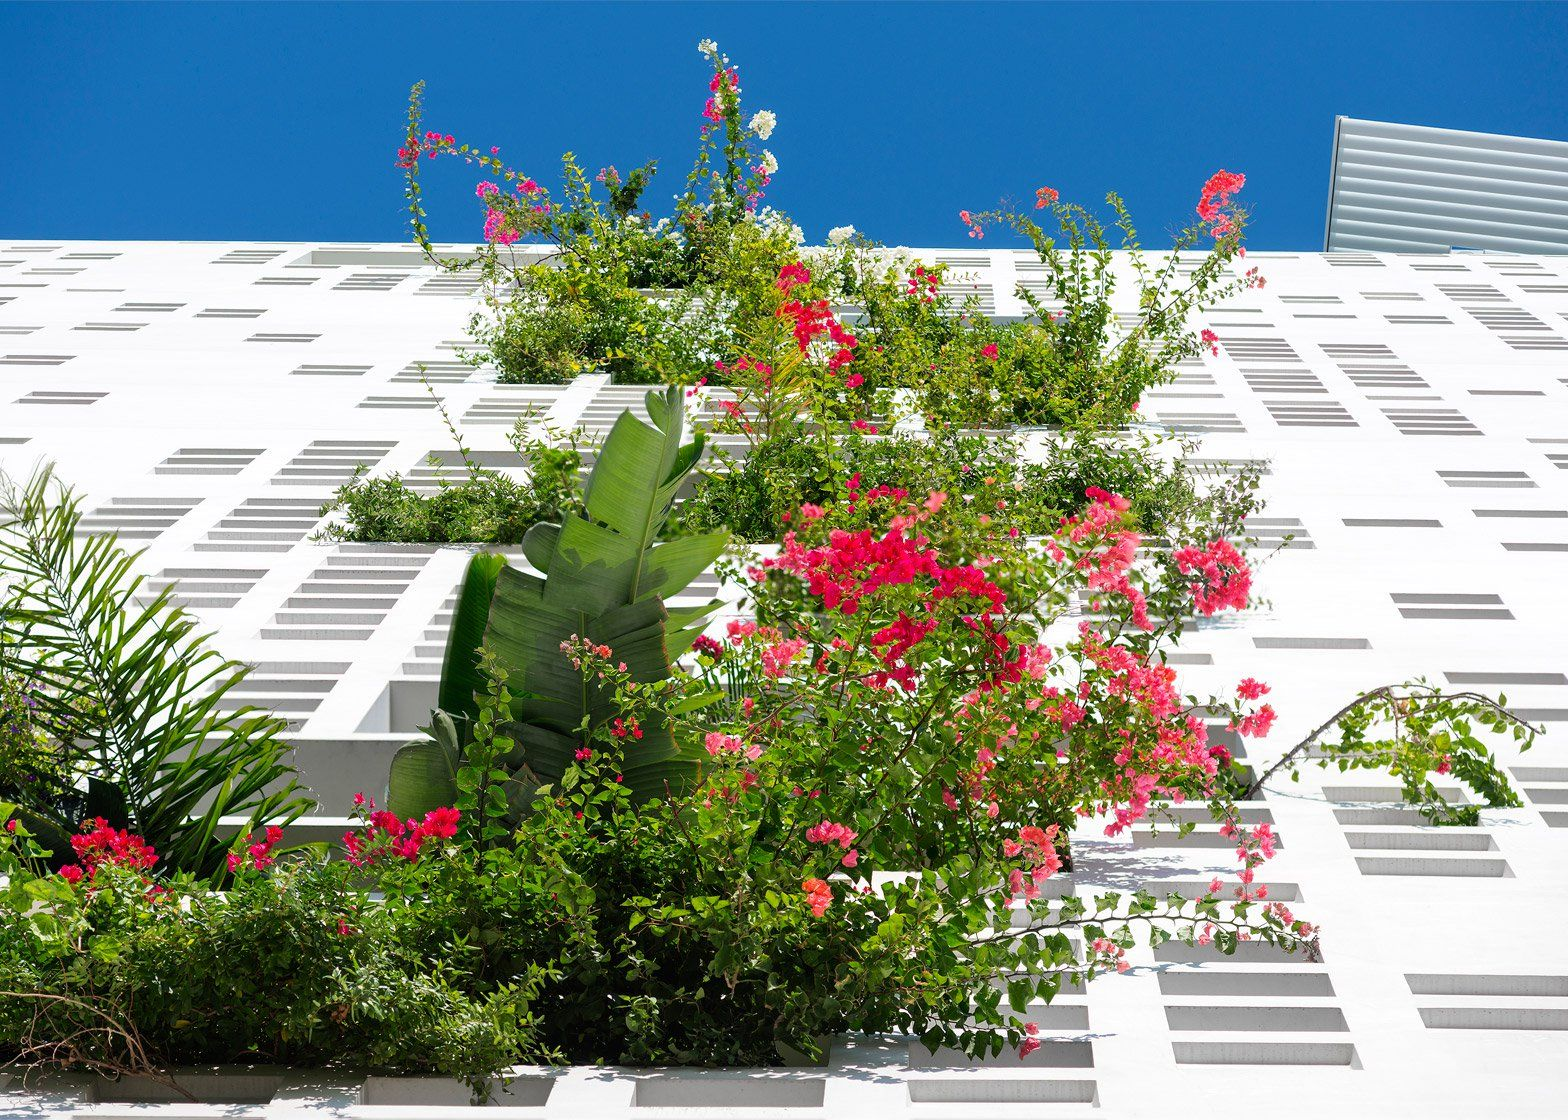 Ateliers Jean Nouvel Has Built A Tower Block In Nicosia Cyprus Featuring Perforated Walls And Wide Balconies That Green Architecture Green Facade Jean Nouvel